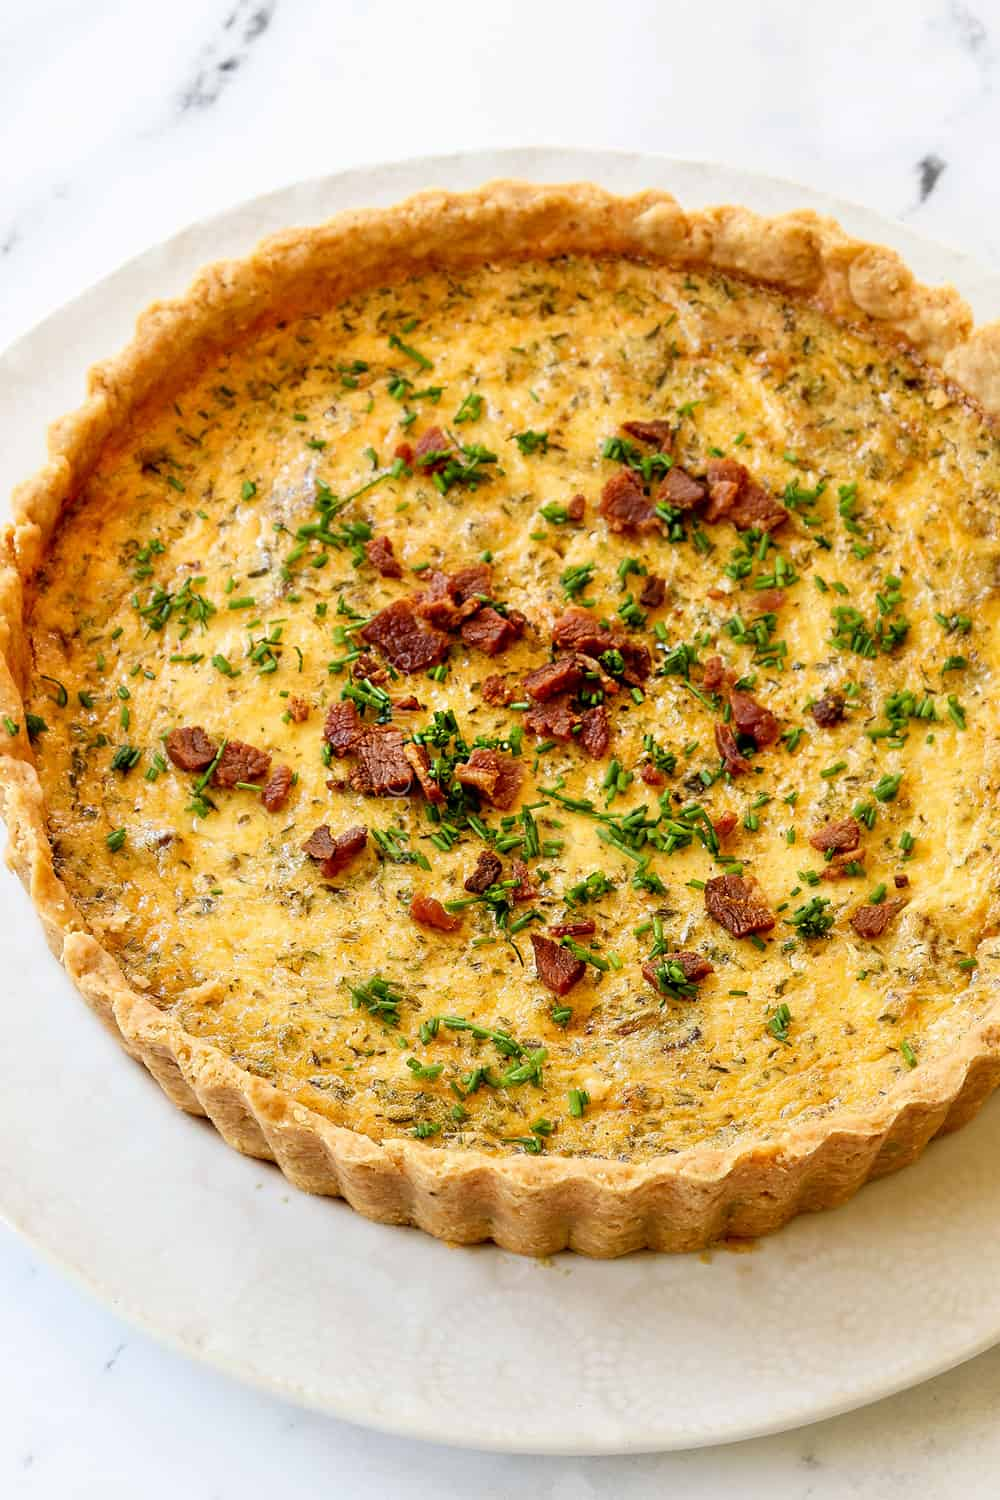 Quiche Lorraine recipe on a white plate garnished with chives on a white plate